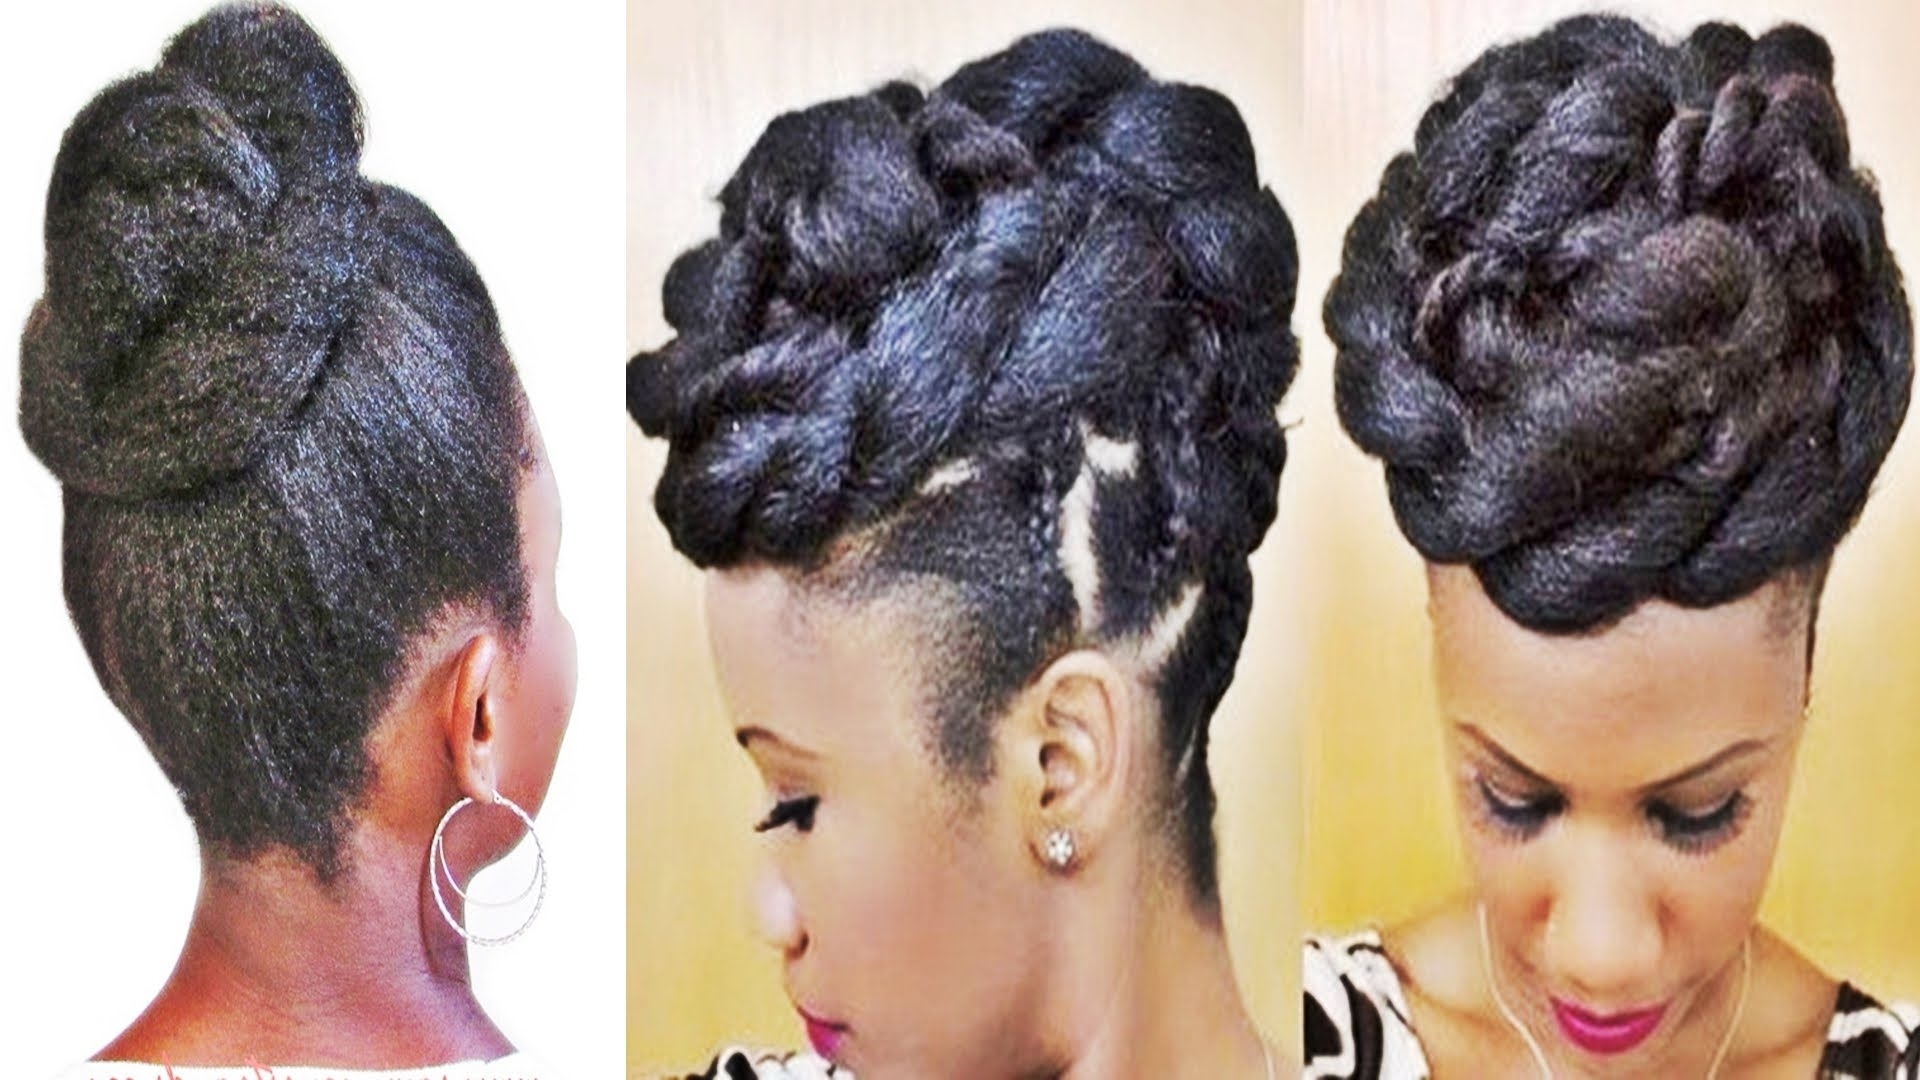 Braids And Twists Updo Hairstyle For Black Women – Youtube Pertaining To Braided Updo Hairstyles With Extensions (View 7 of 15)